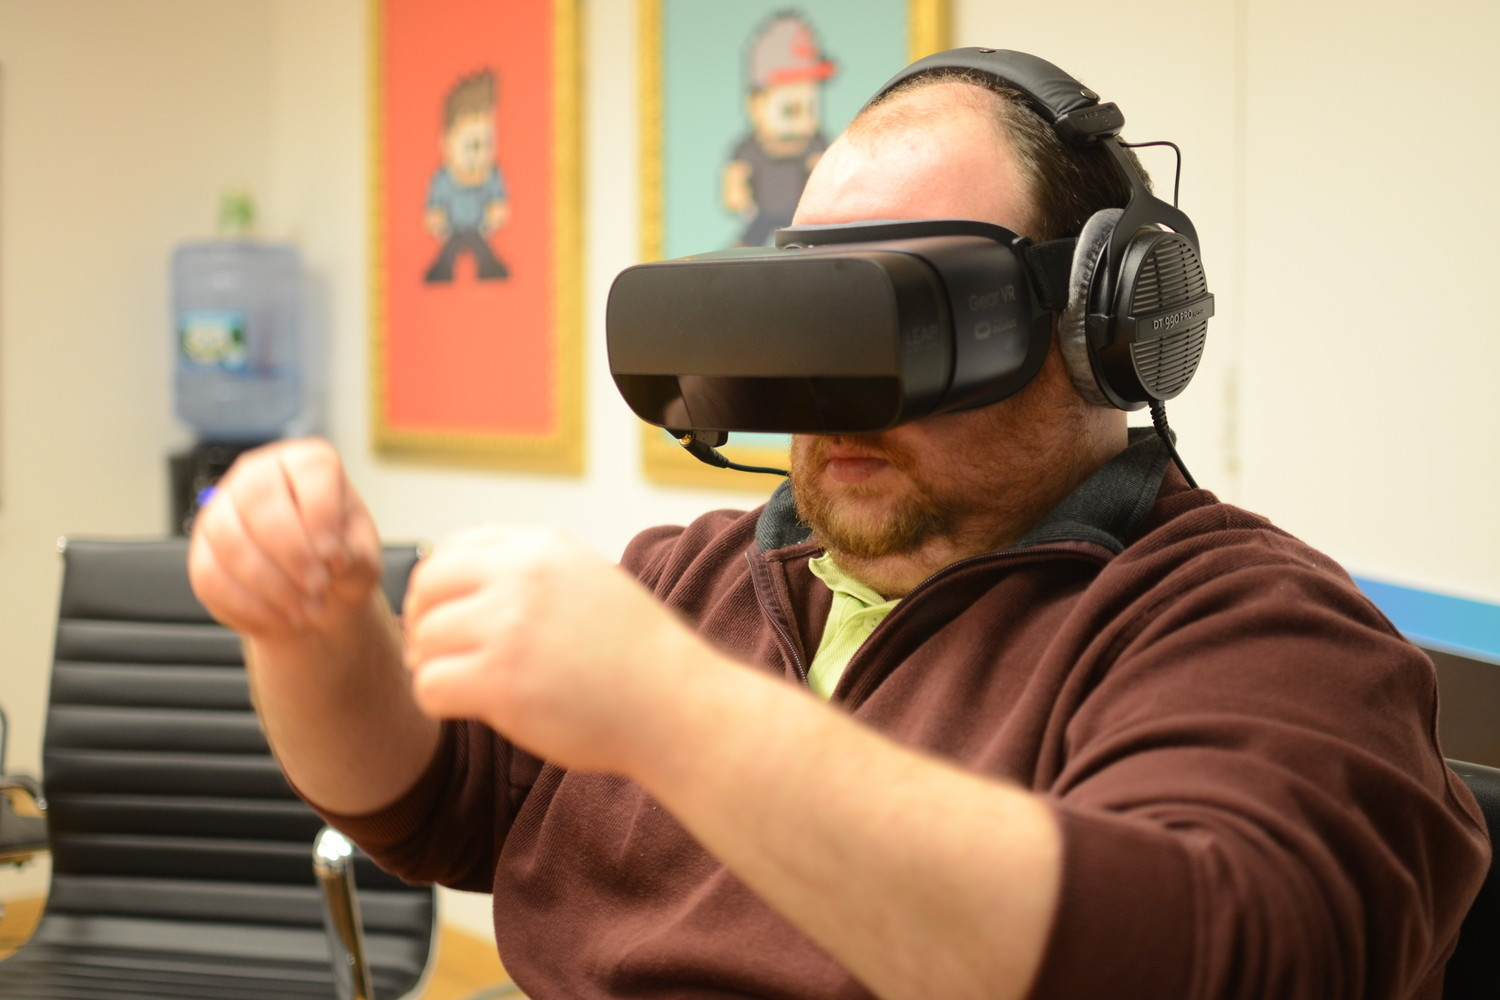 Forget controllers, use your hands: Leap Motion's tracking tech hits mobile VR